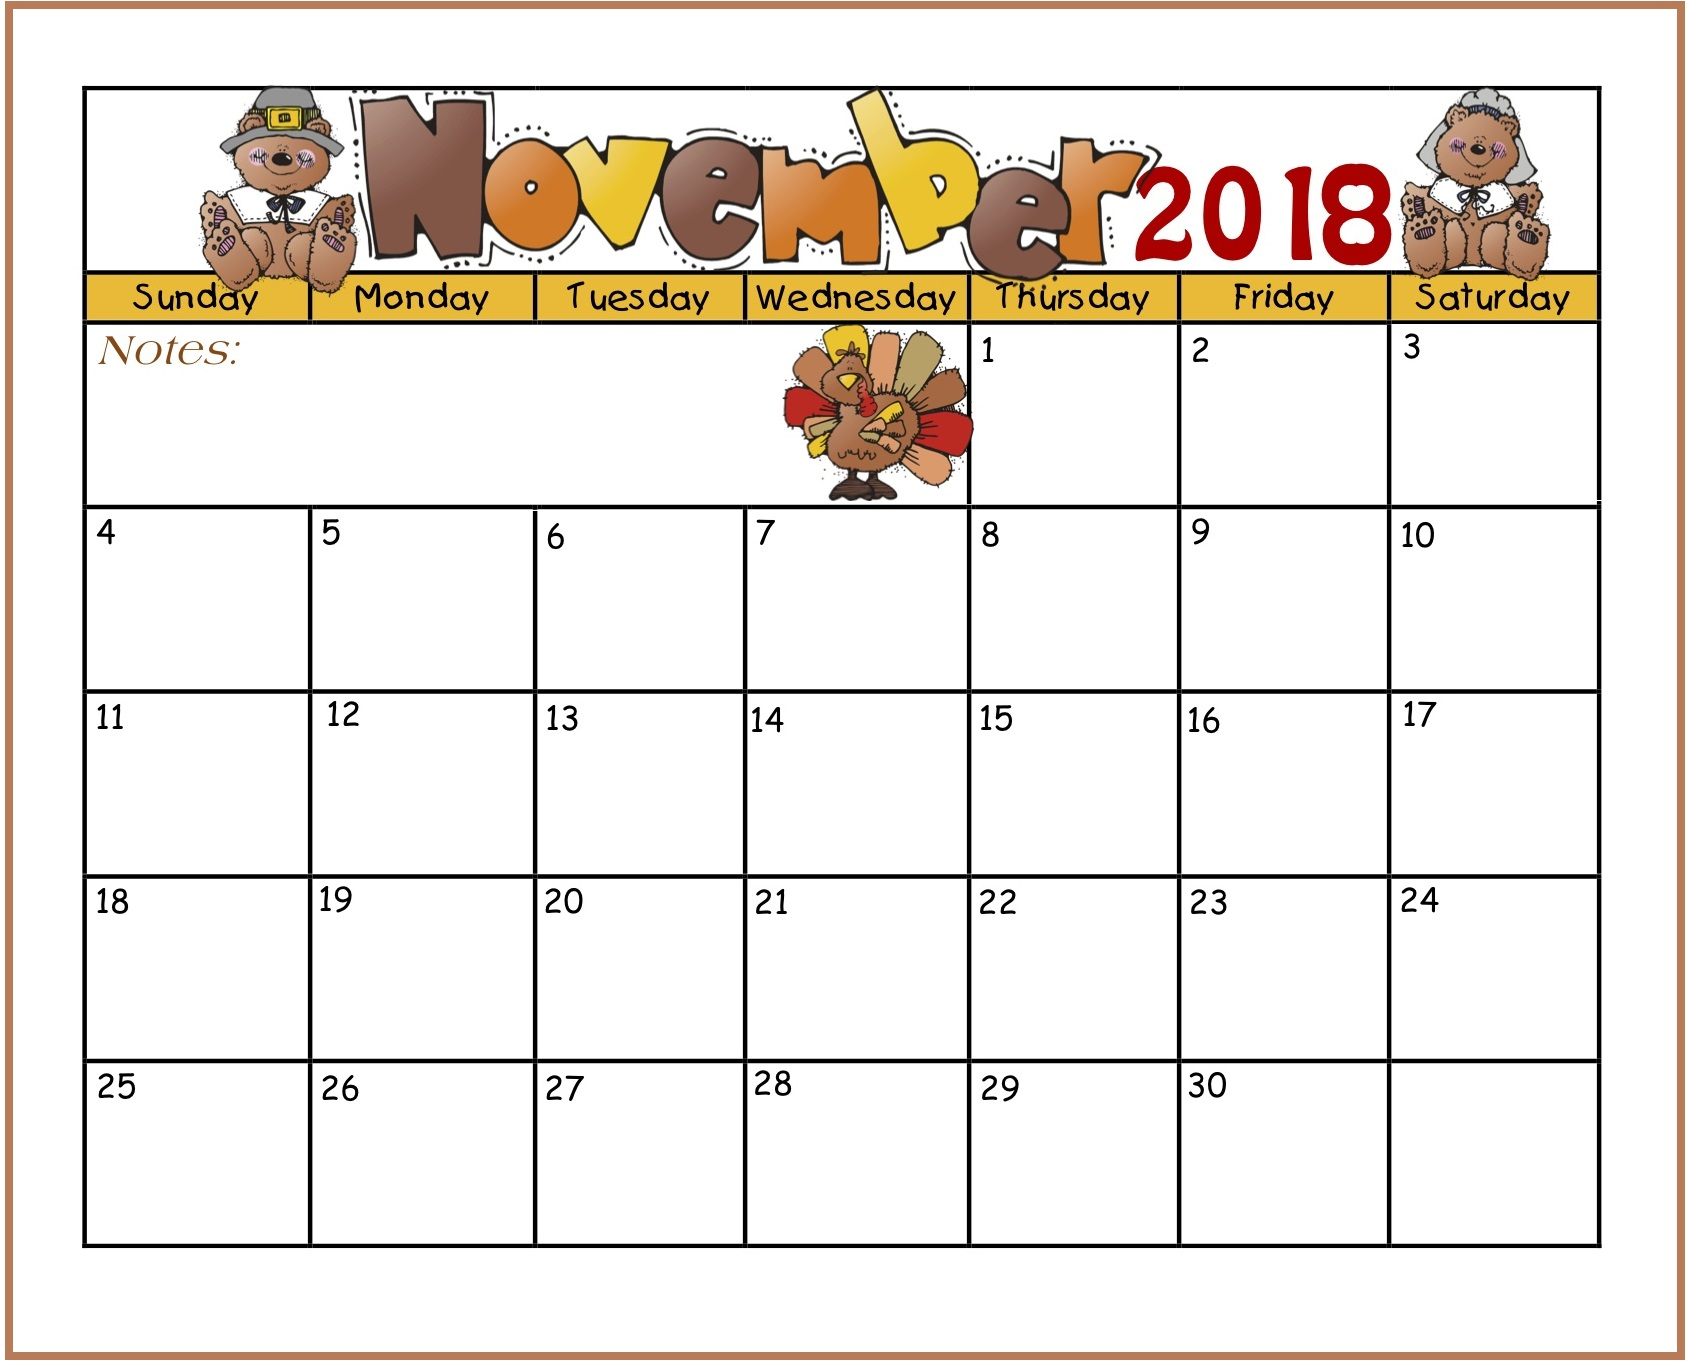 November 2018 Calendar Landscape for Kids